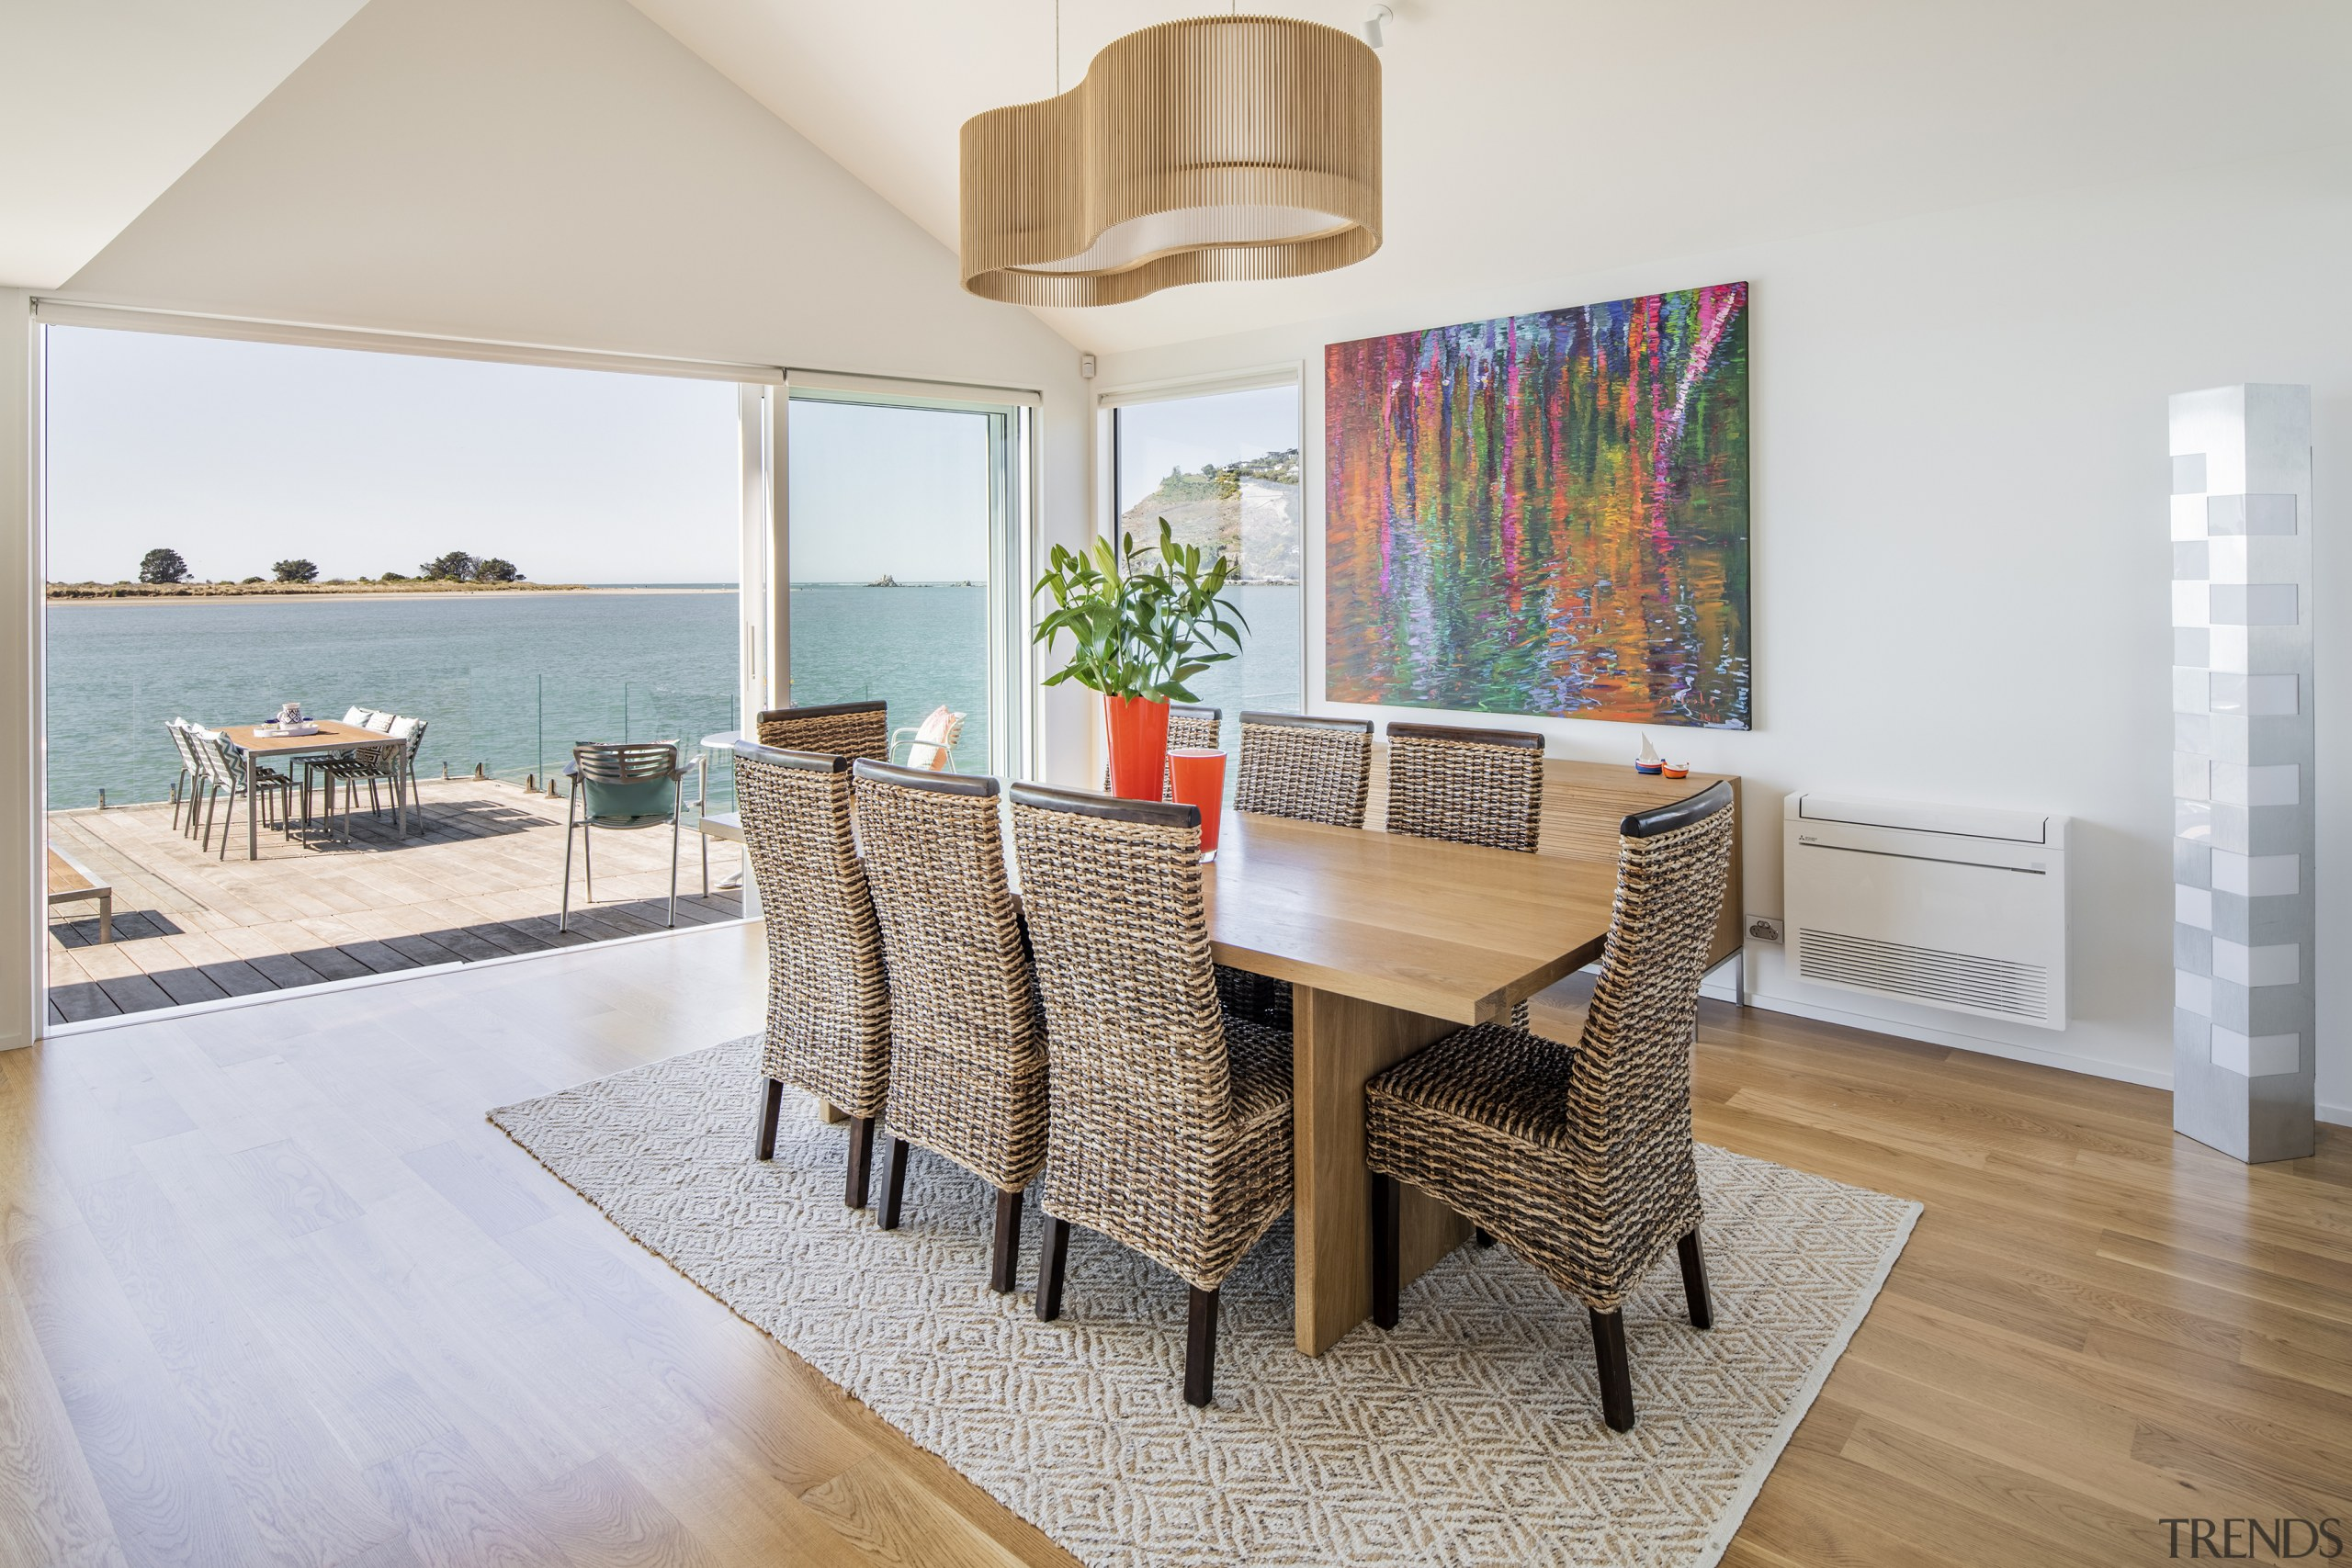 Set alongside the living space, the dining area